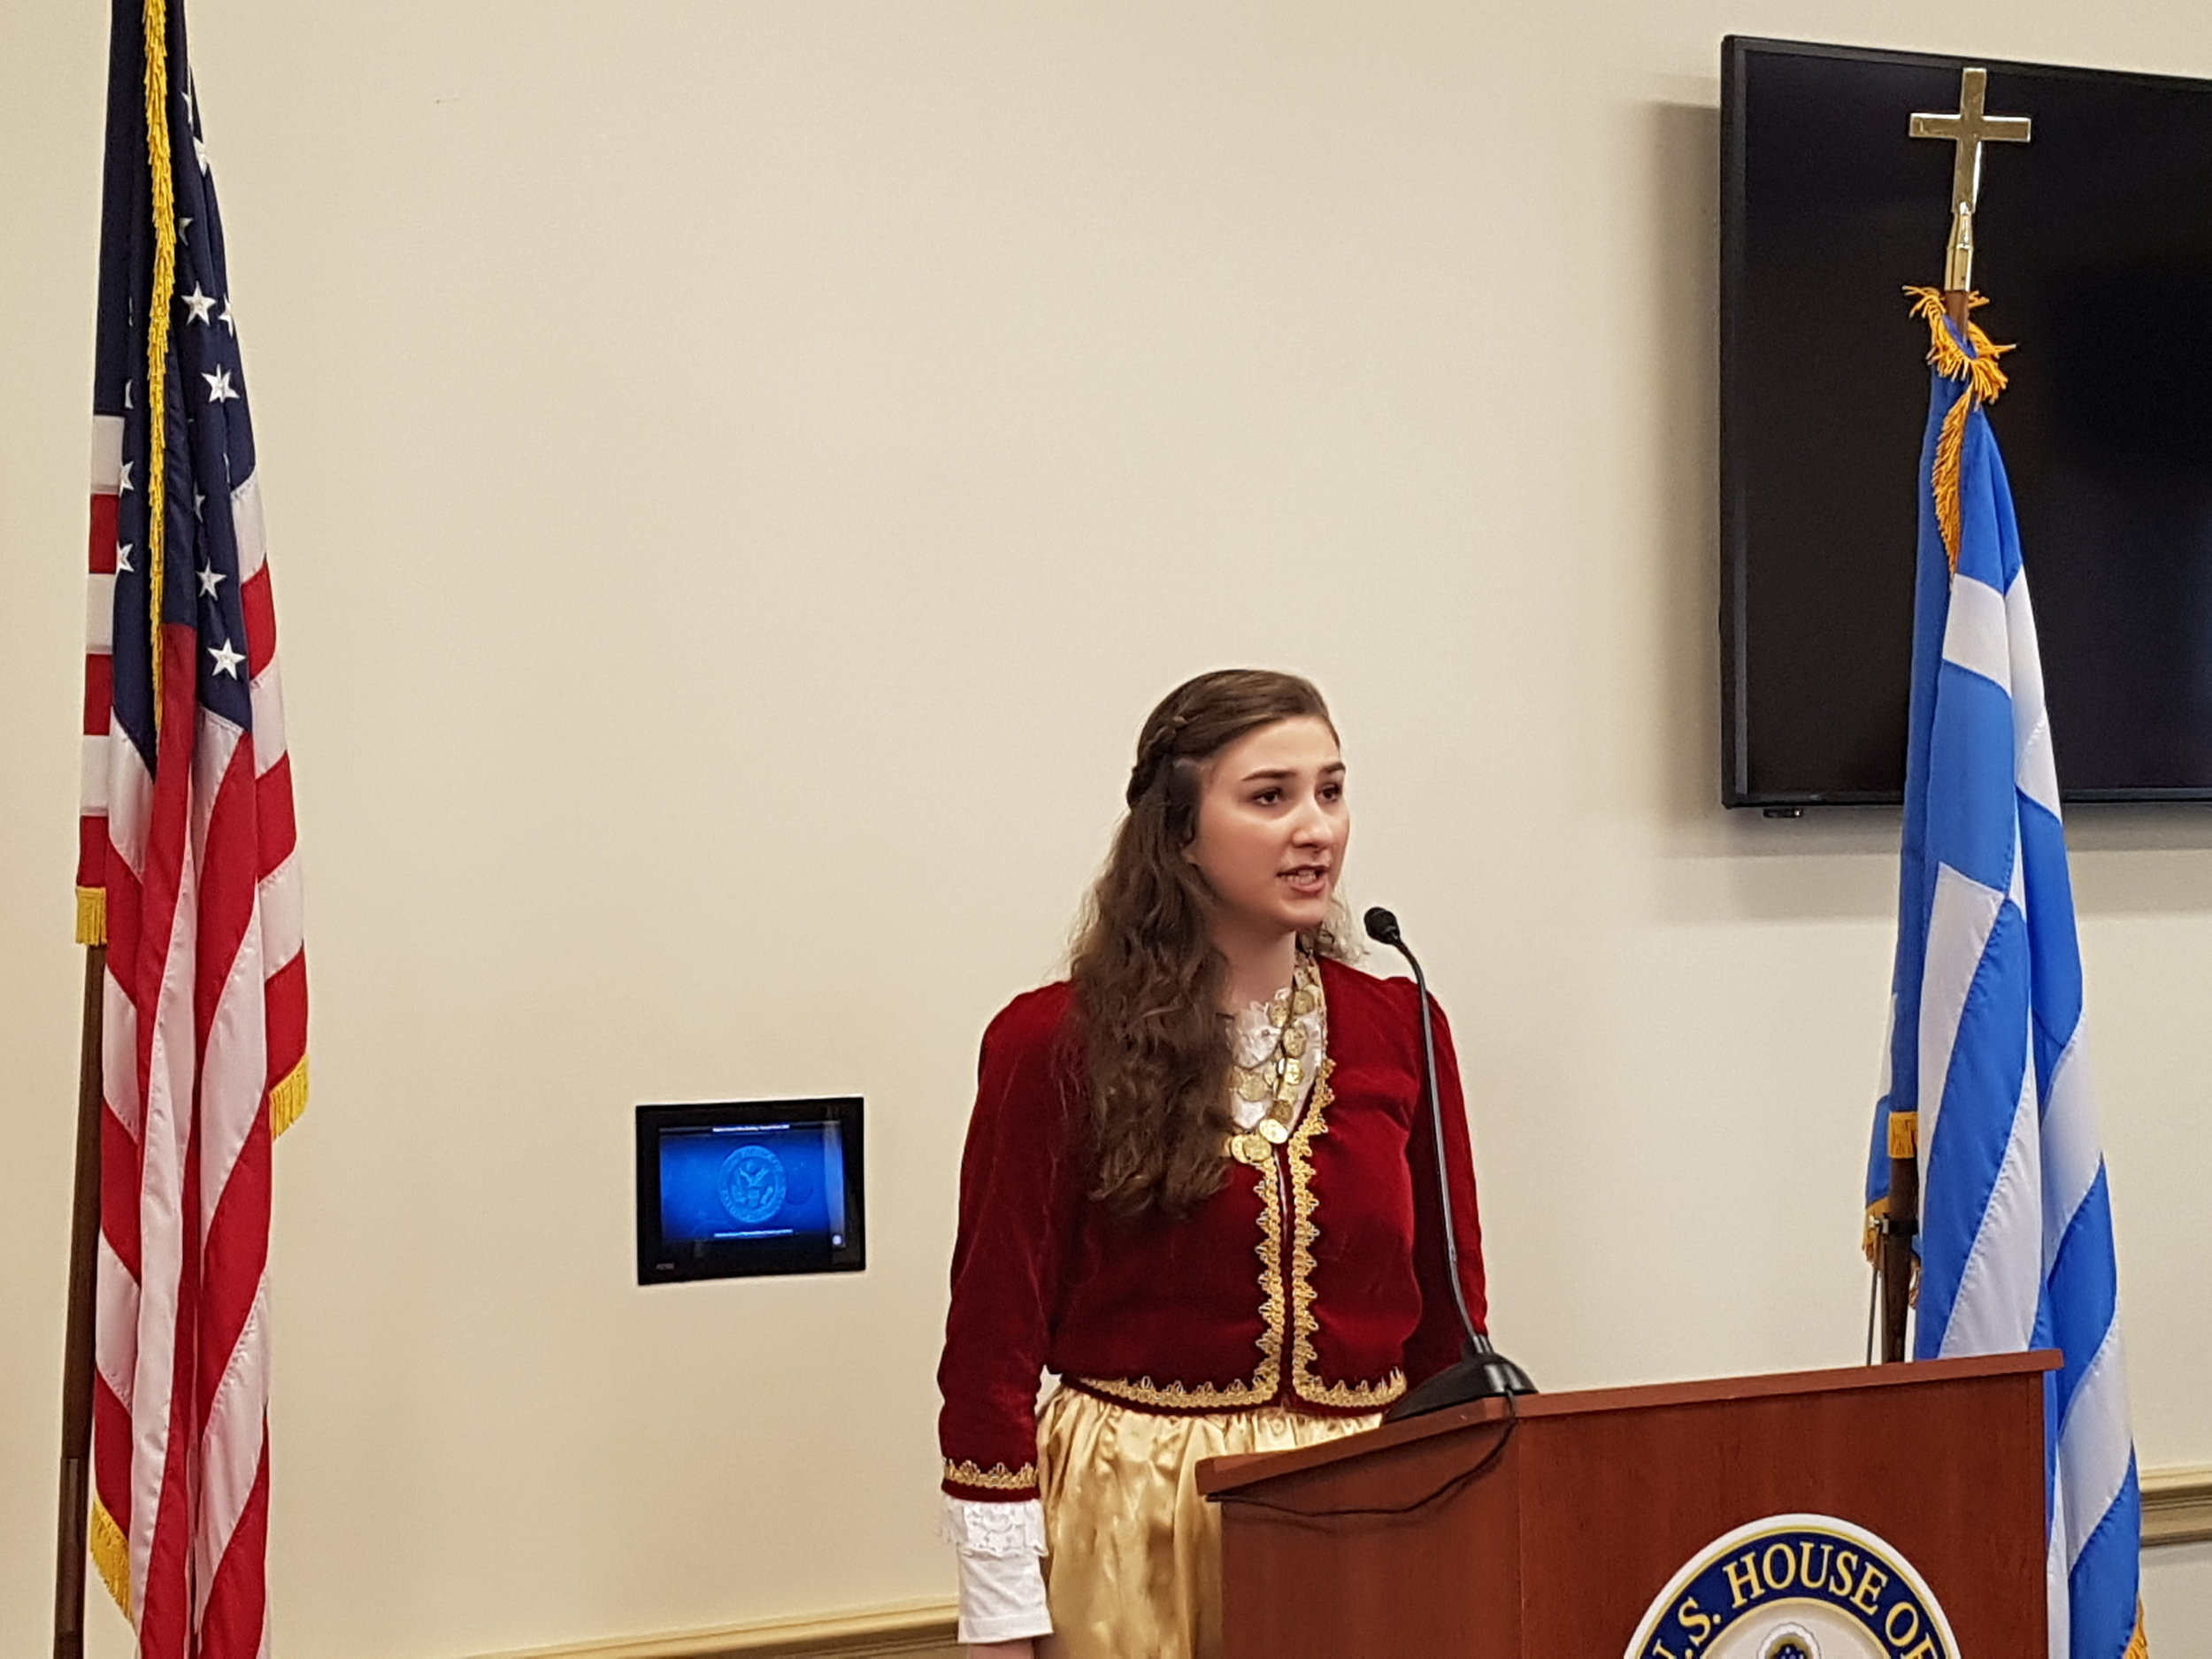 Sophia Pelekasis, Performing Both Greek & American National Anthems, At AHI's Congressional Salute To Greek Independence Day